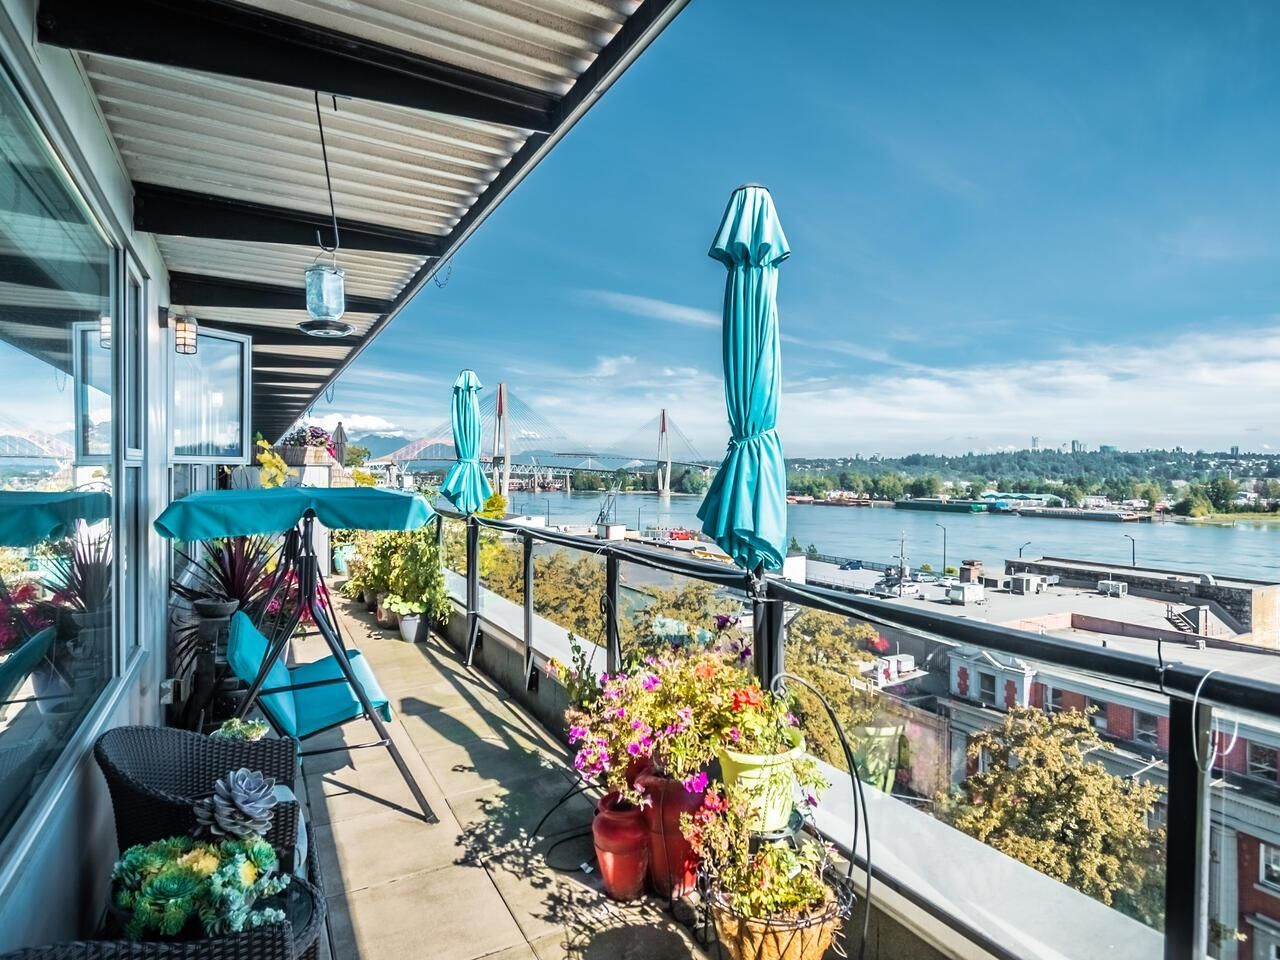 Spacious 315 Sq Ft terrace/deck with sweeping 180 degree views